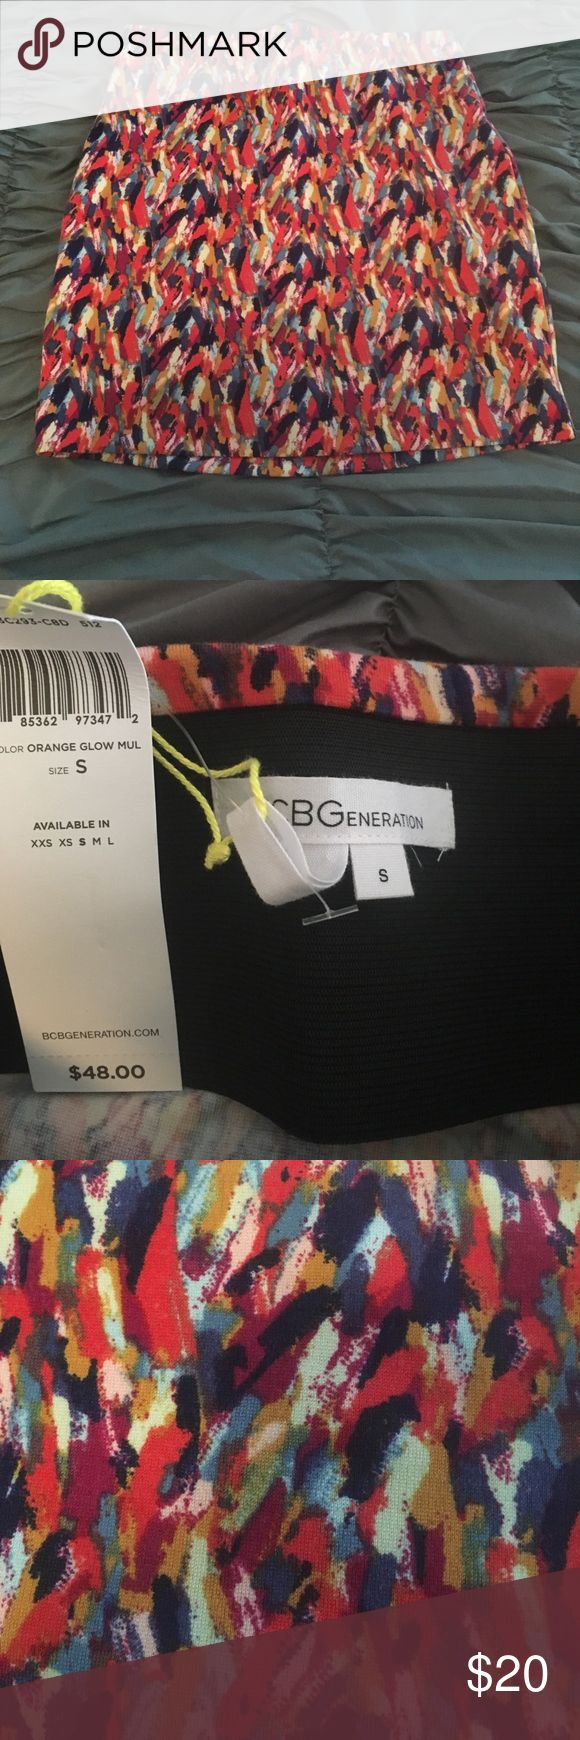 BCBGeneration skirt size S NWT Bright brand new BCBGeneration skirt with wide (hidden) waist band. Fitted style. BCBGeneration Skirts Mini